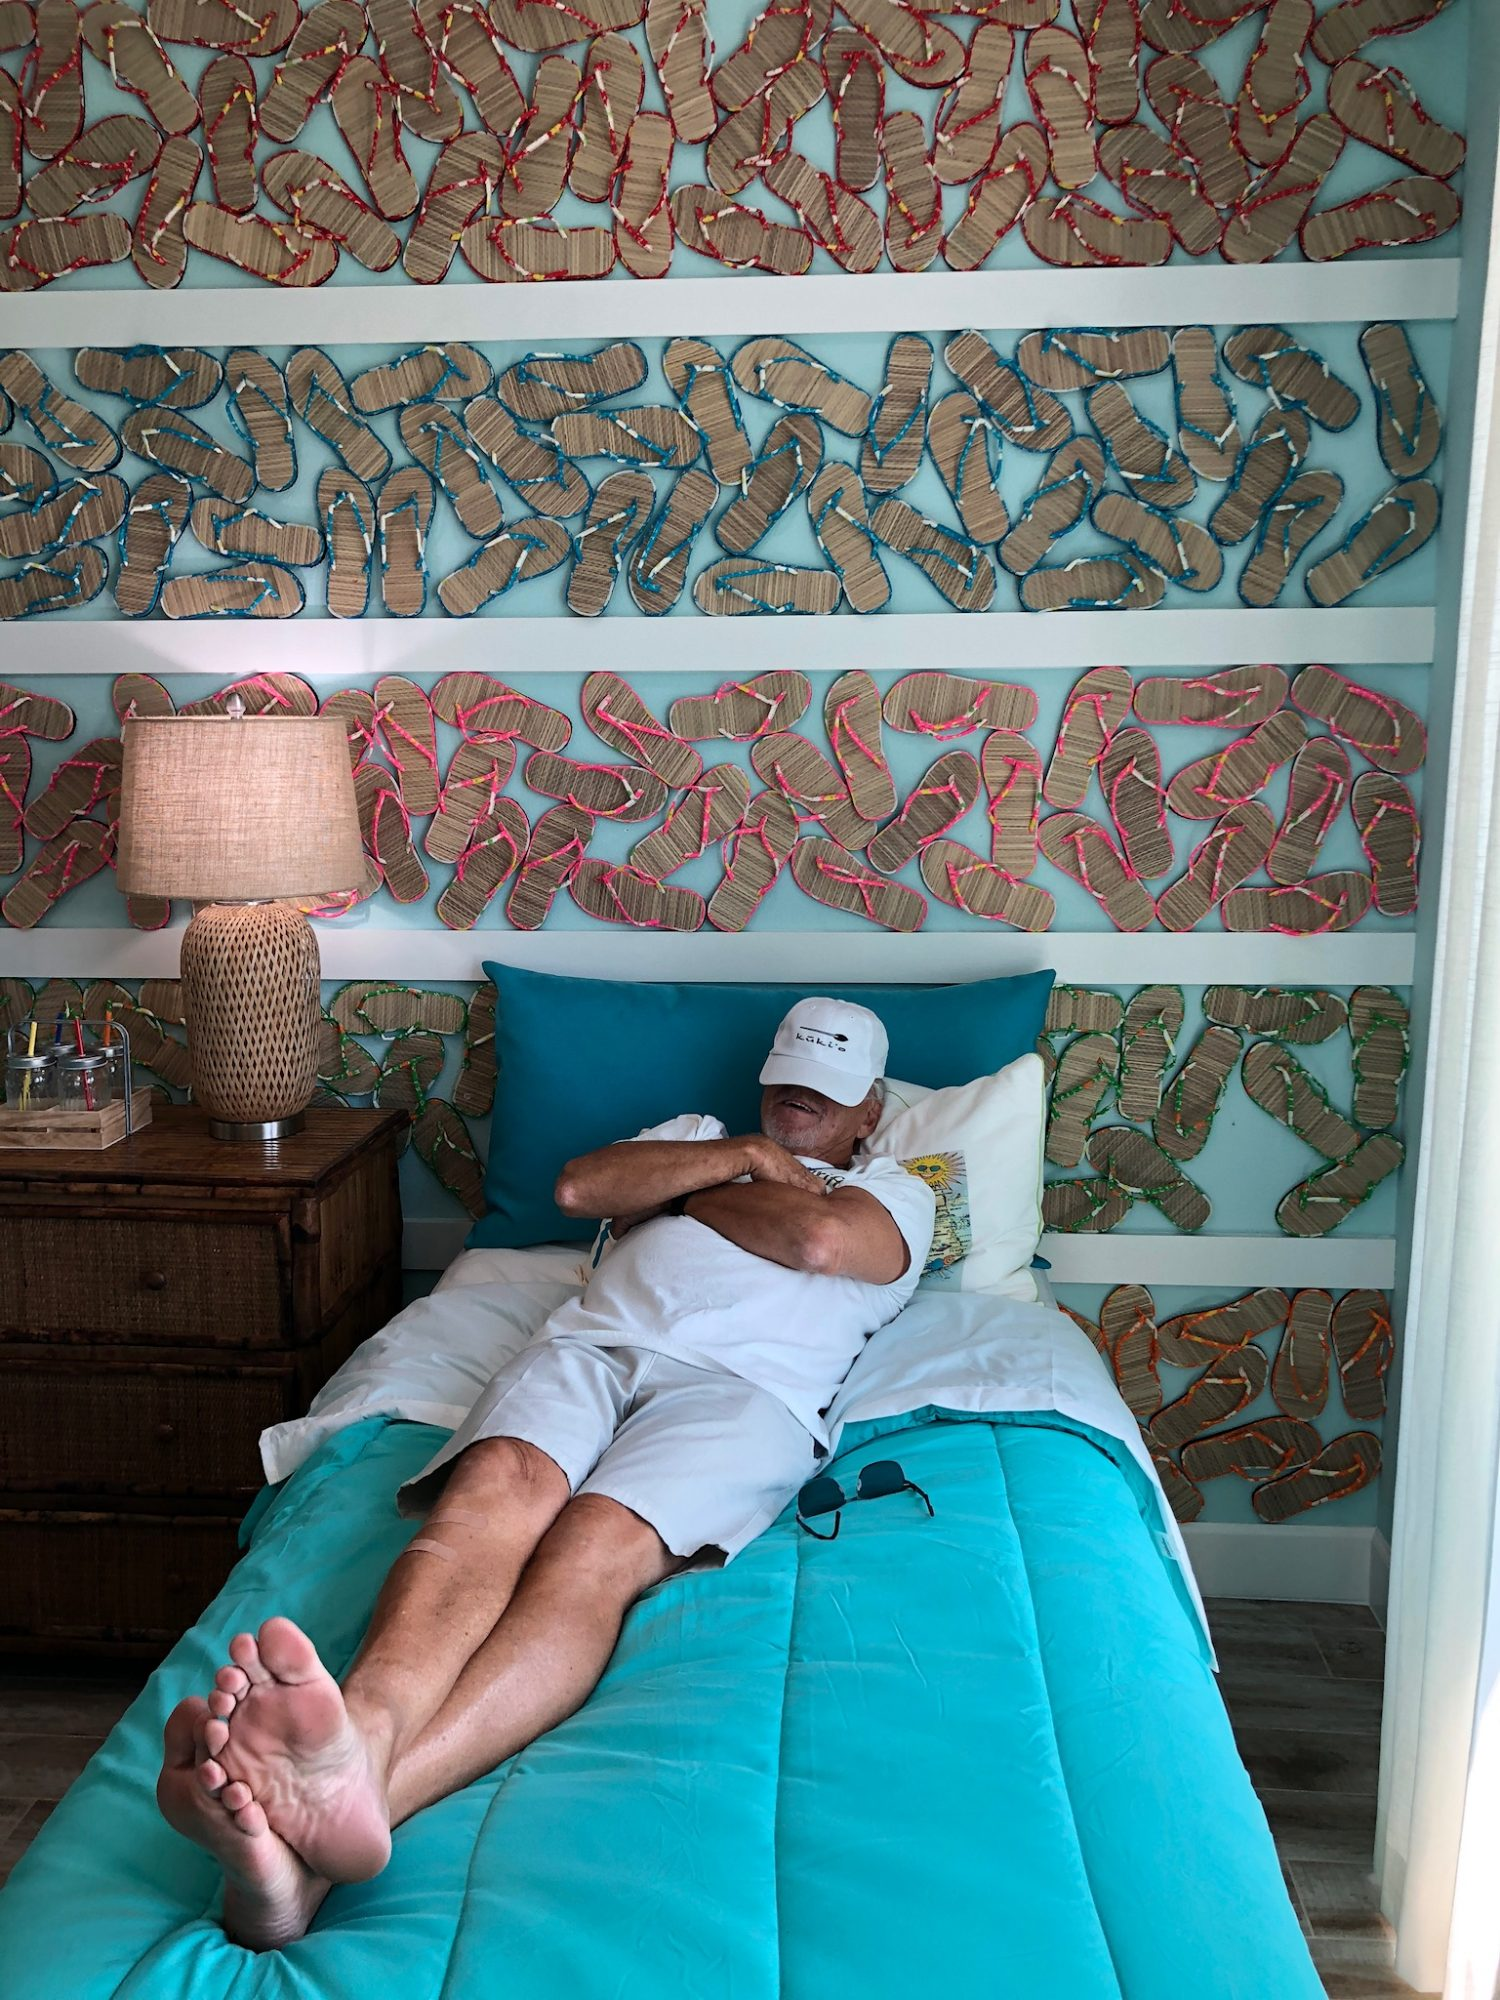 Jimmy Buffett Taking Nap at Latitude Margaritaville